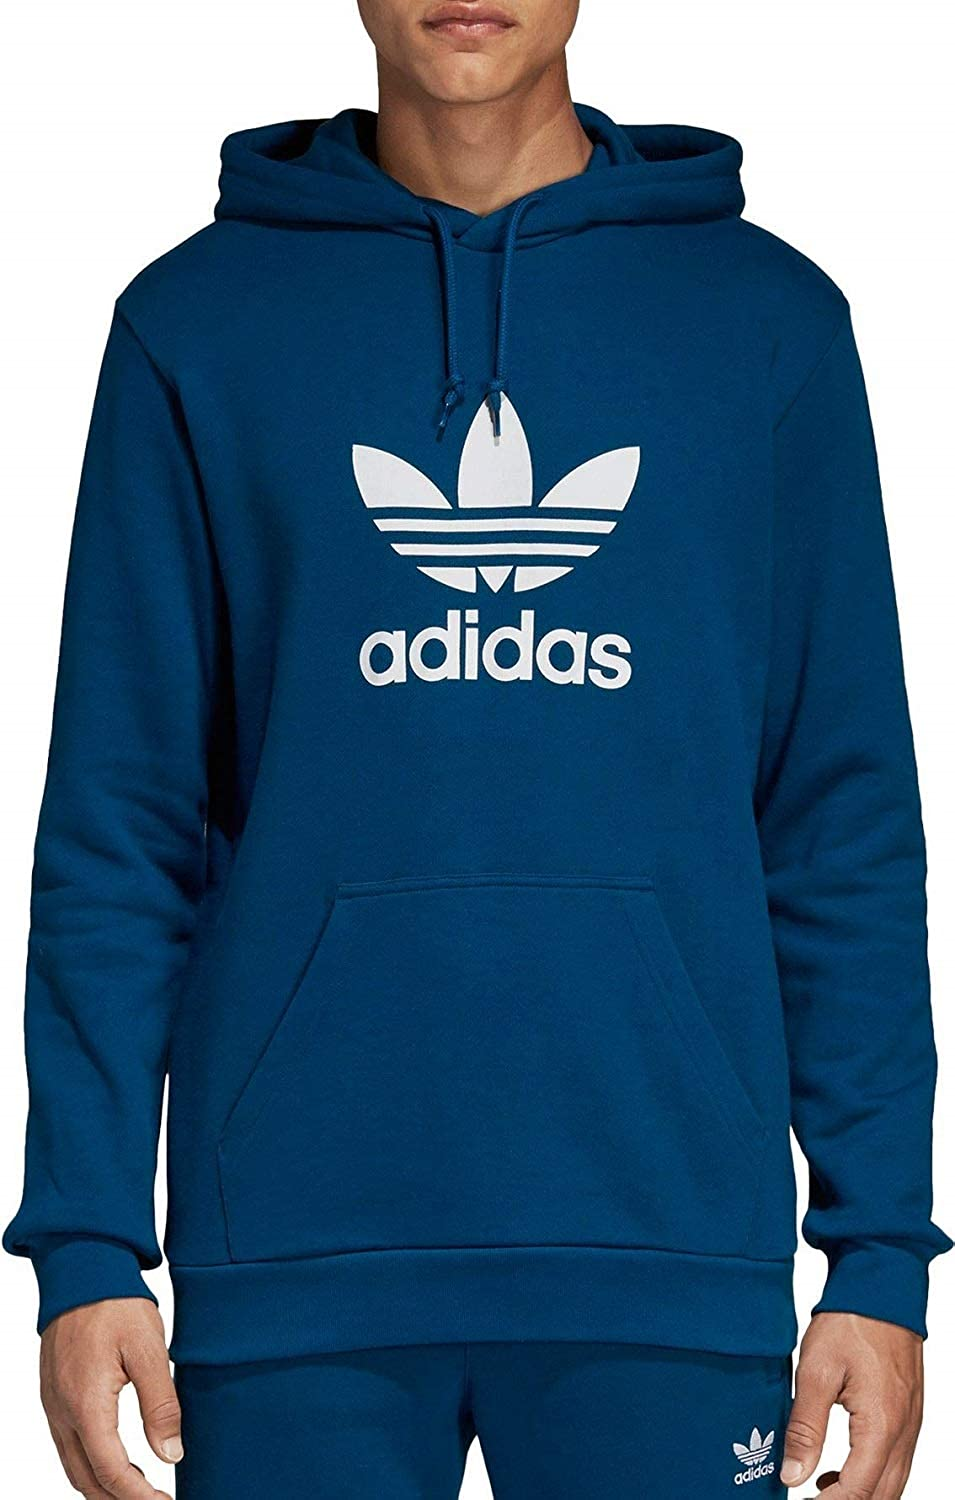 Adidas Originals Men's Street Graphic Crew Royal Blue Sweatshirt